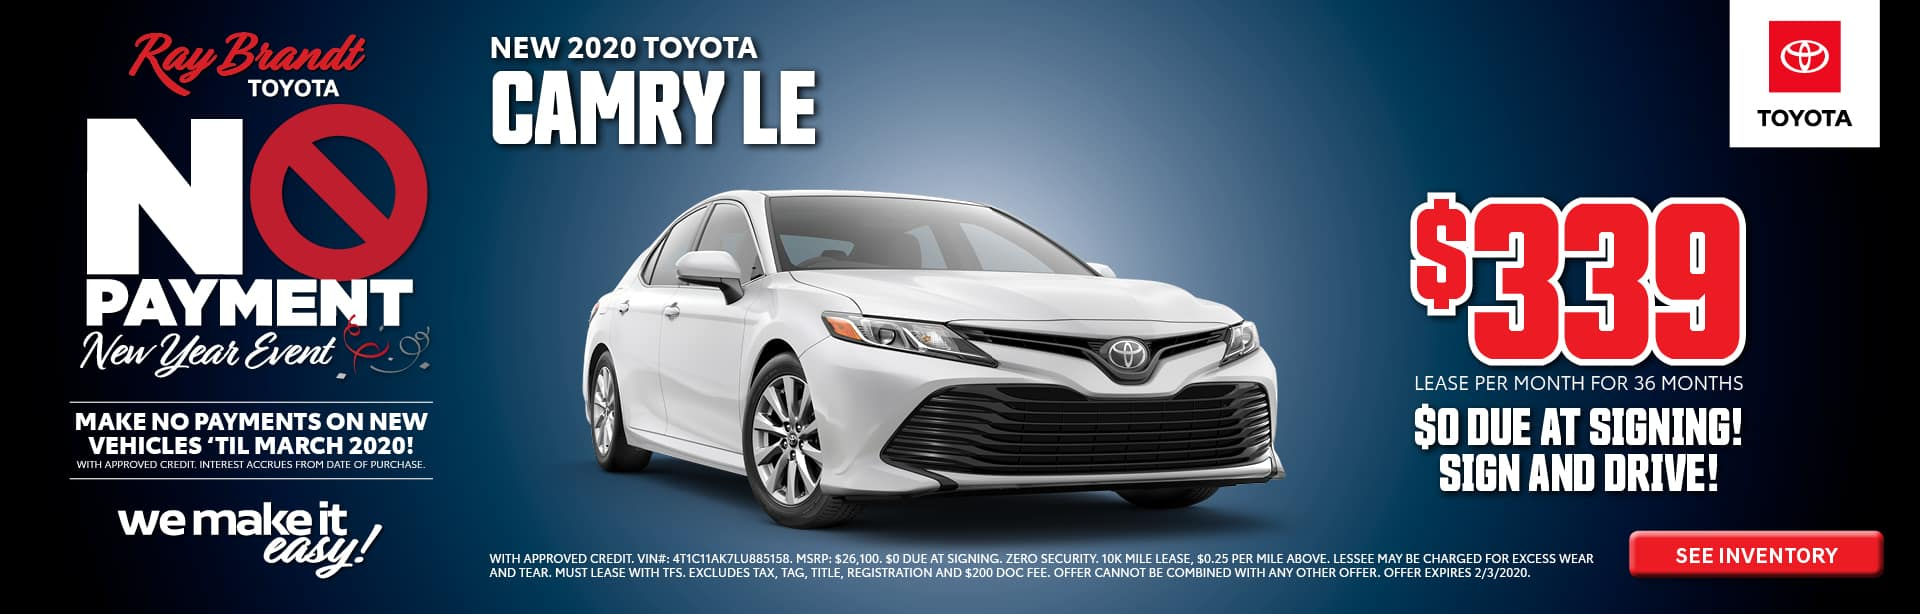 CAMRY SPECIAL